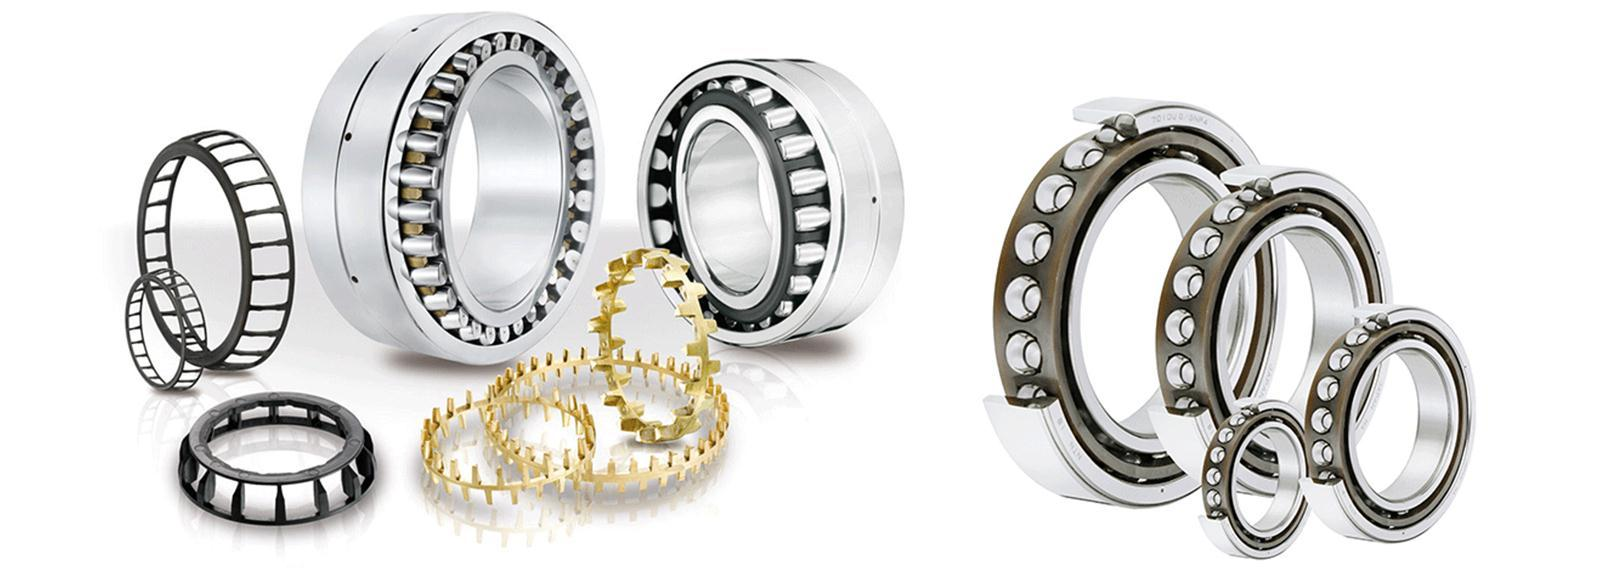 TBB bearing is a professional bearing trading company with 18 years of experience and served 2000+ global enterprises.